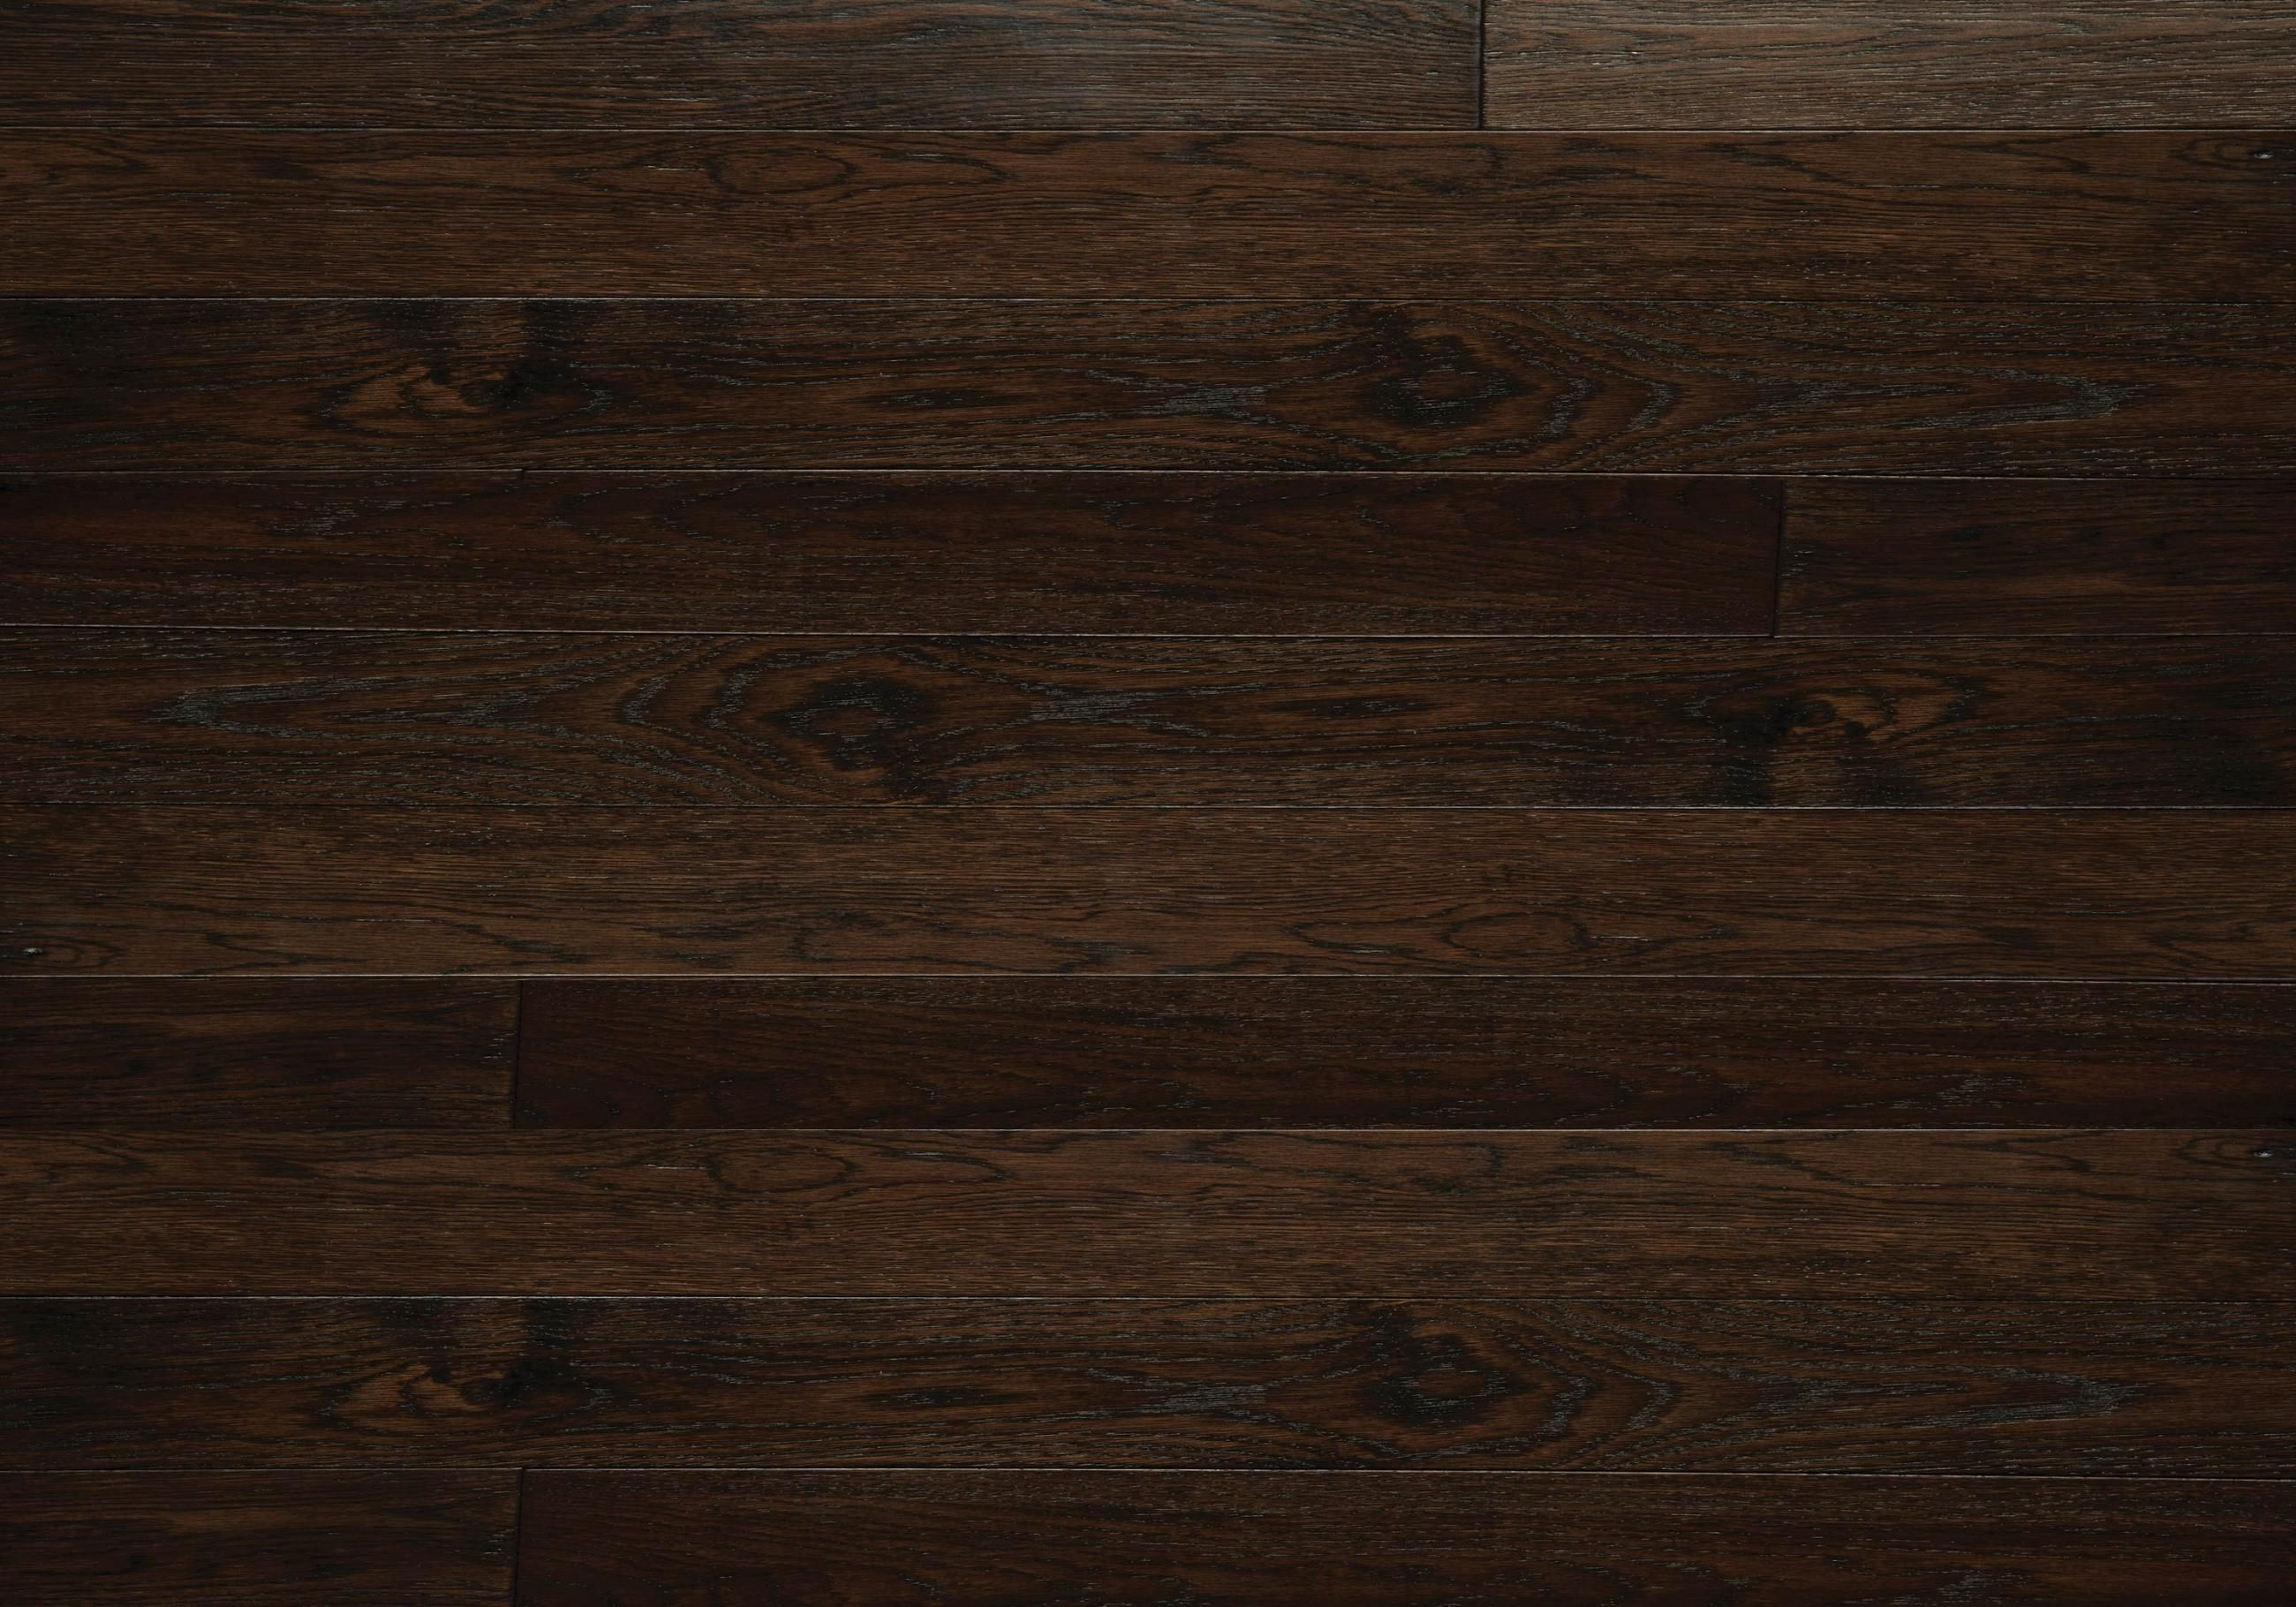 Wood Flooring Dark & Wood Flooring Dark & Dark Hardwood Floors ... - ^